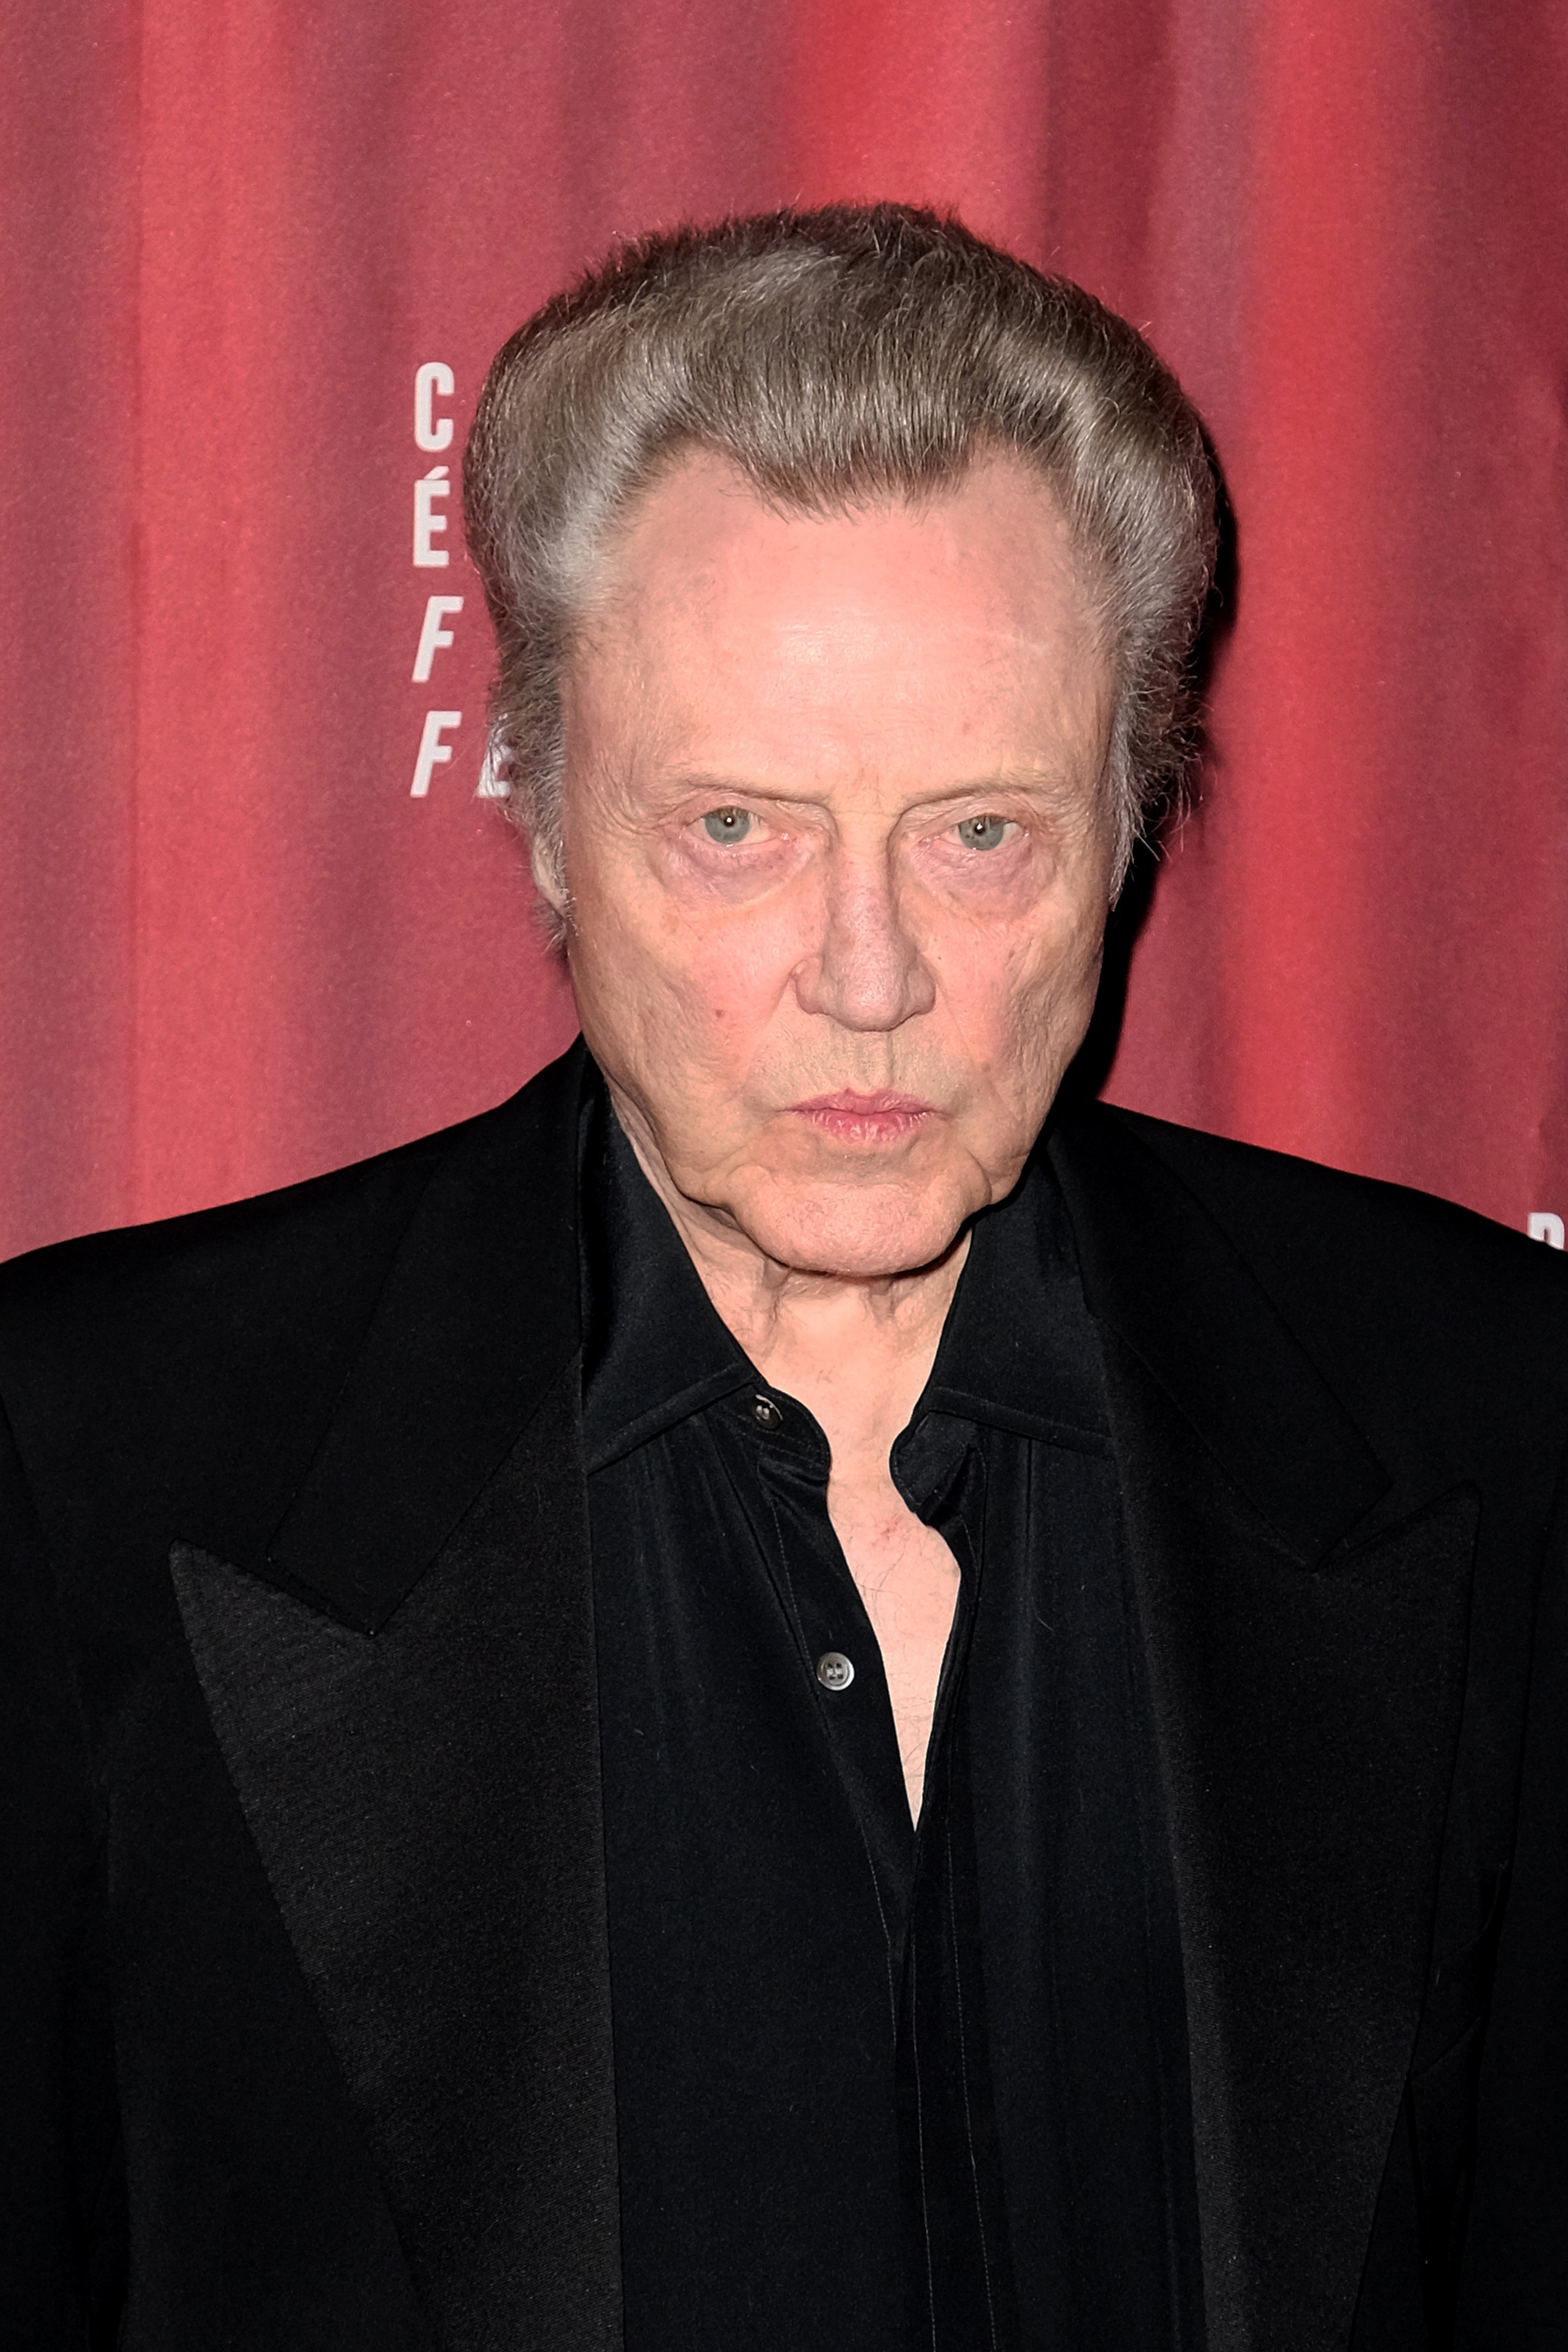 Actor Christopher Walken attends the 8th Champs Elysees Film Festival : Day Four Paris, France.    Source: Getty Images